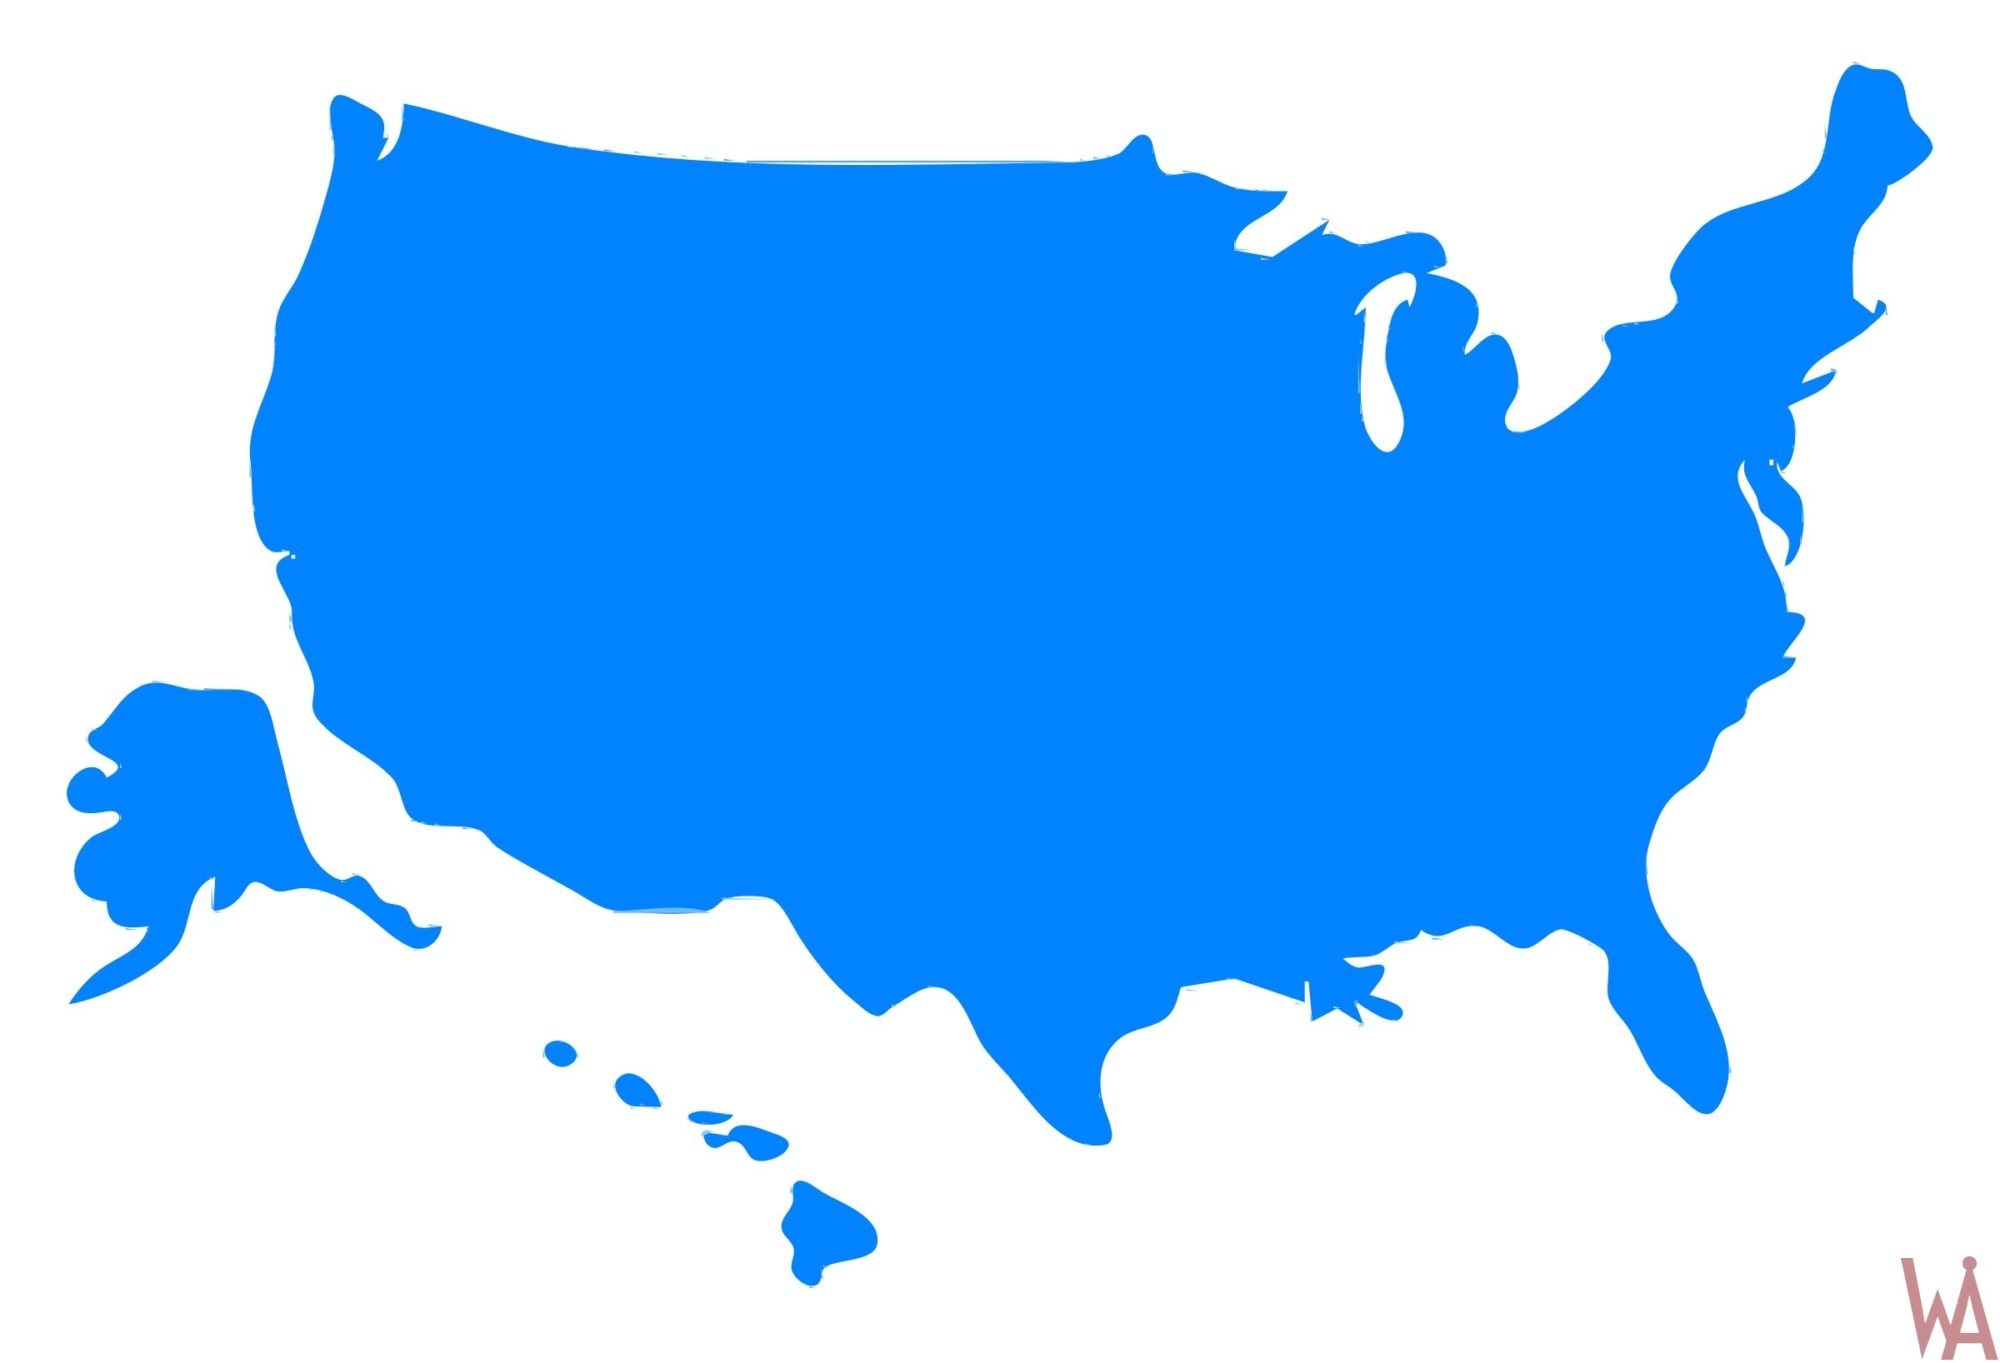 Blank Outline color 1 Map of the USA | WhatsAnswer